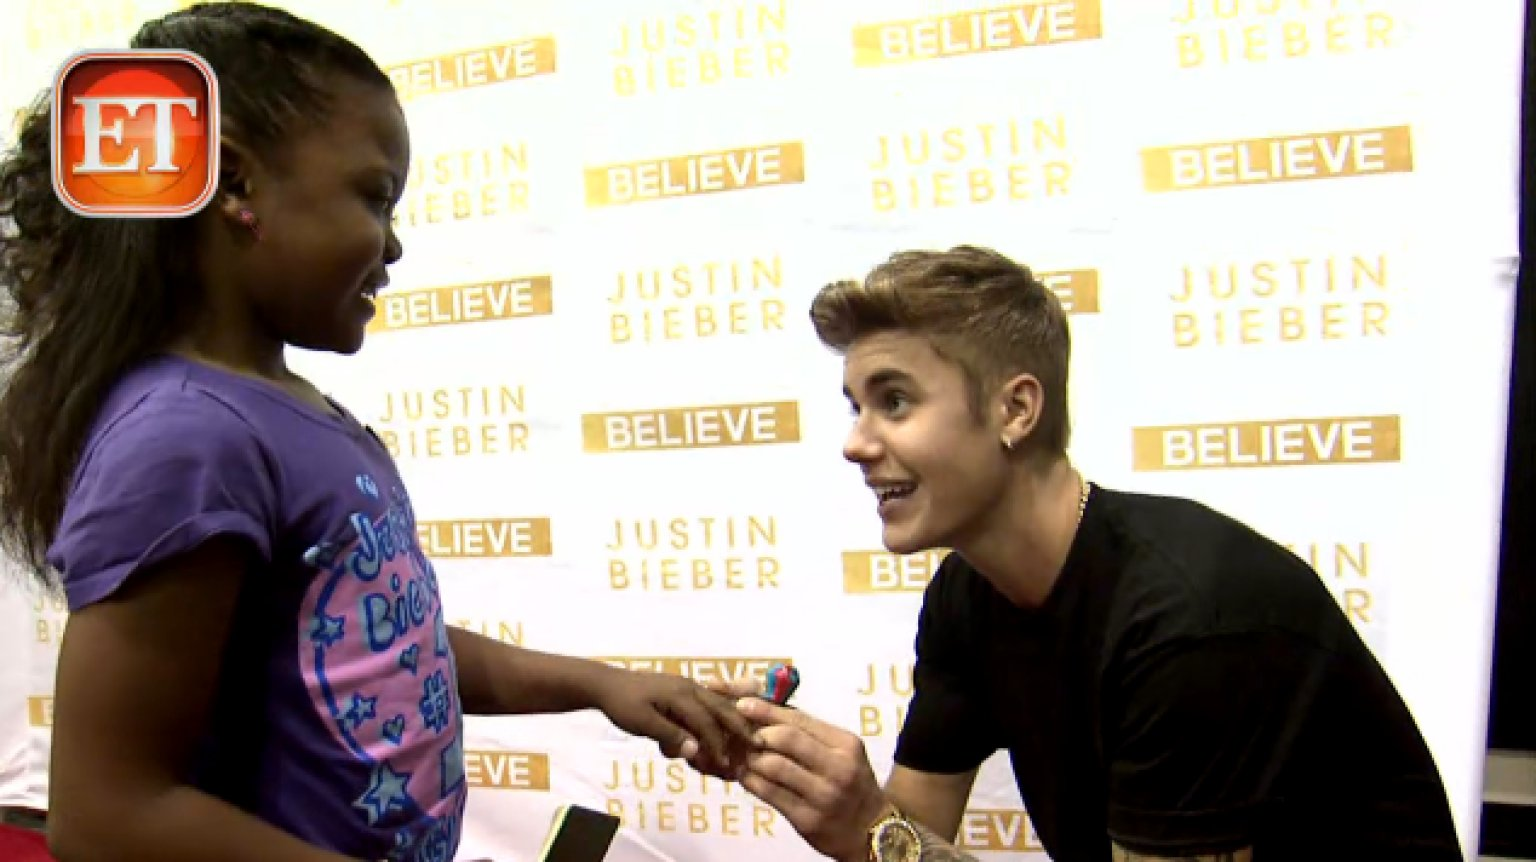 Justin Bieber Grants 200th Make A Wish  Melts Hearts   HuffPost